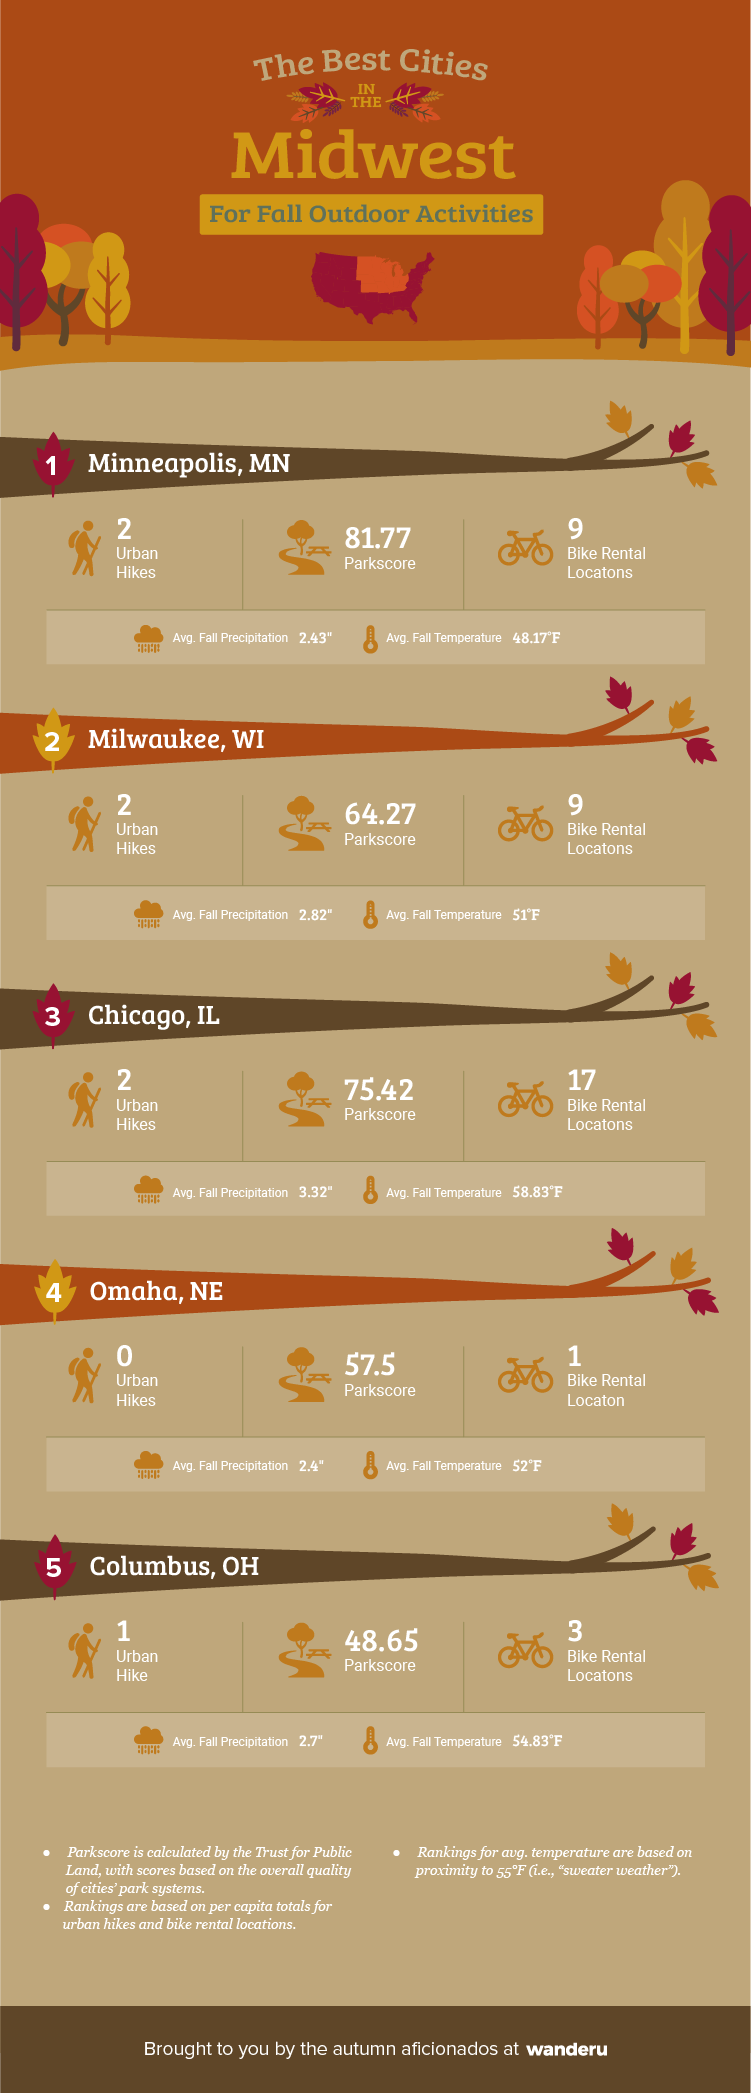 Ranking of the top five cities in the Midwest for outdoor activities.